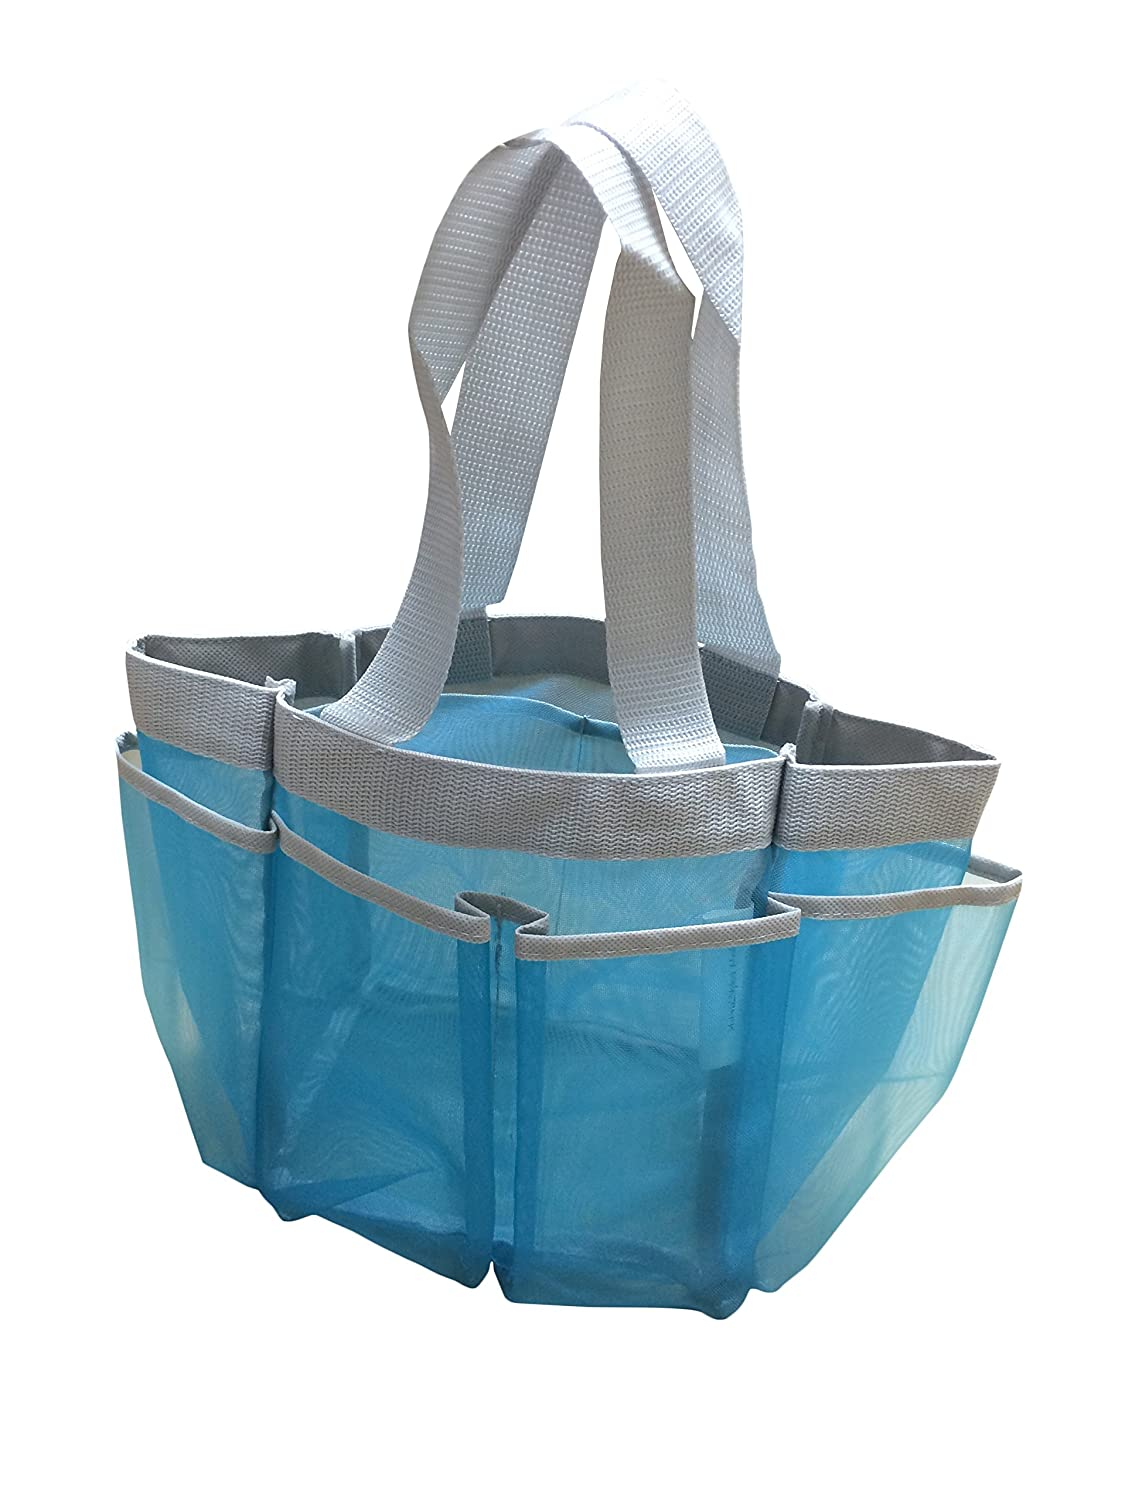 Fancy Sterilite Shower Caddy Gift - Bathtub Ideas - dilata.info